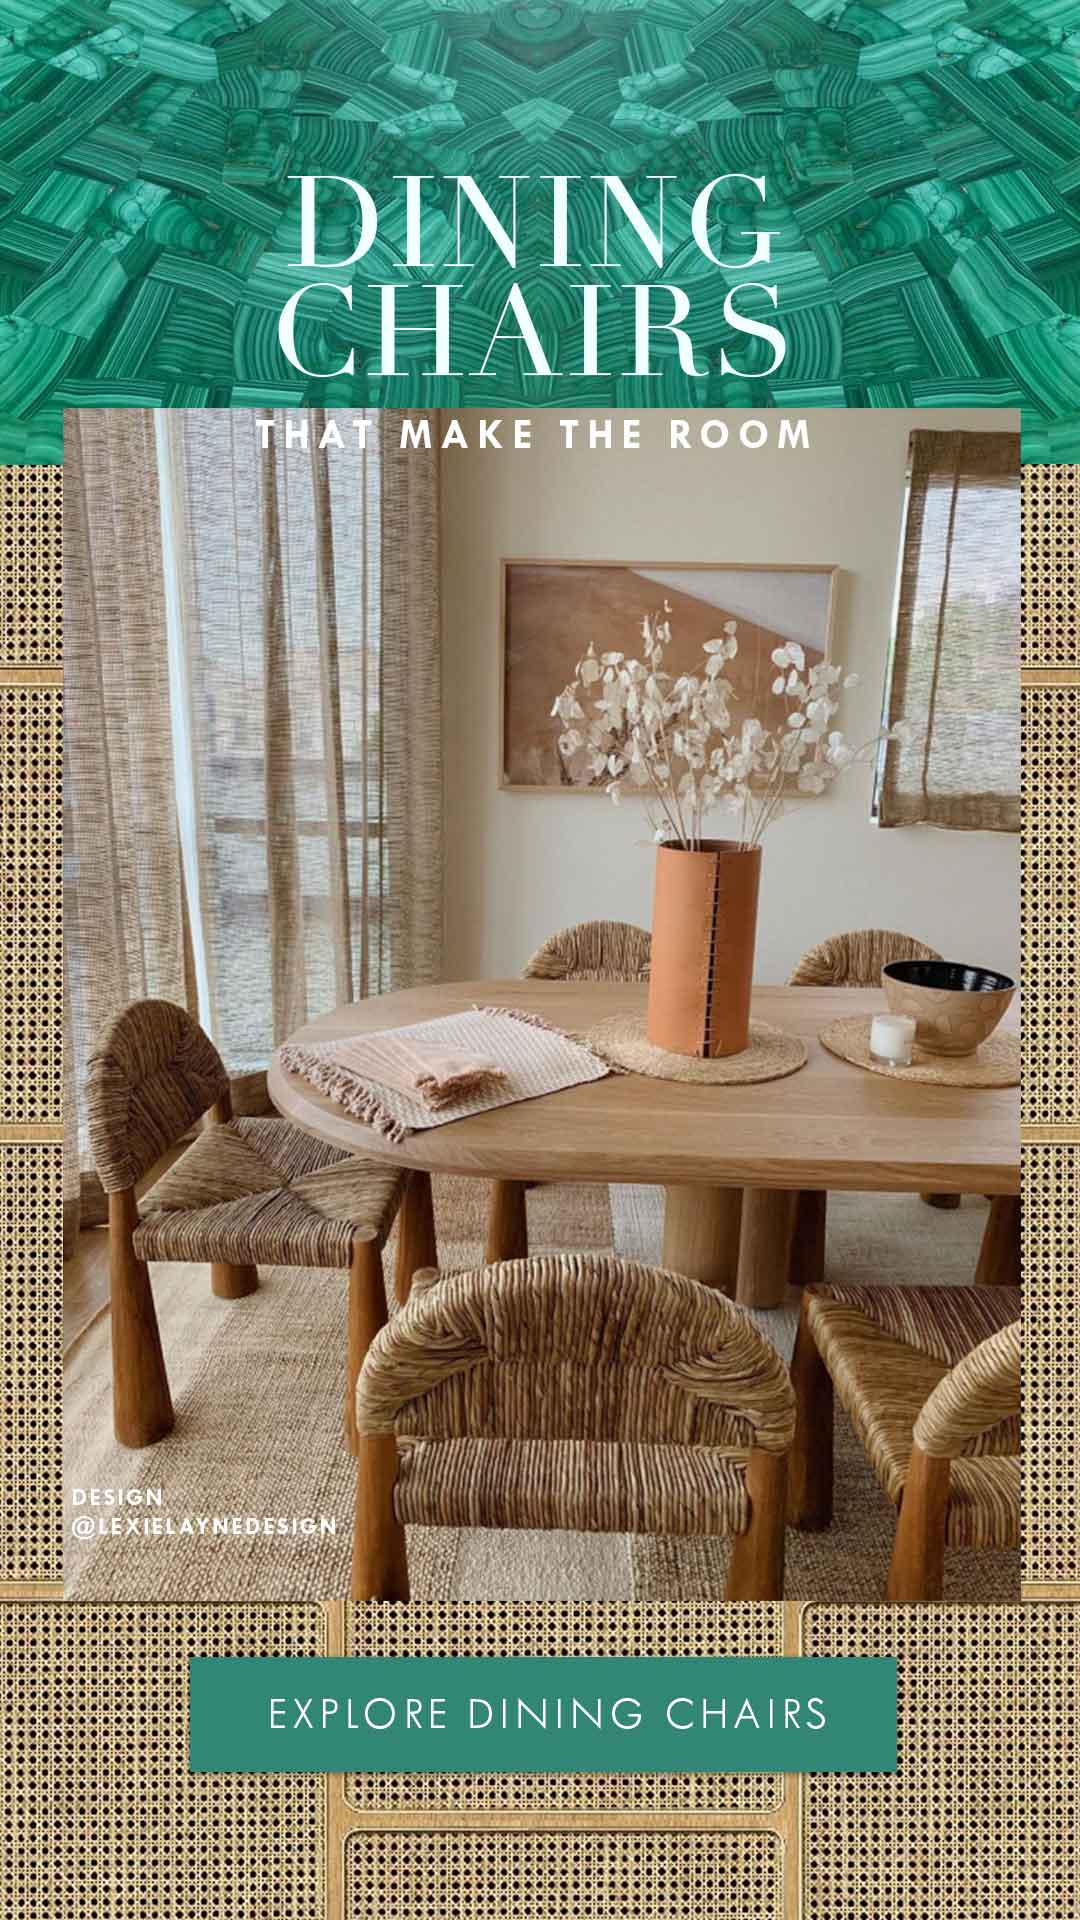 Explore Dining Chairs